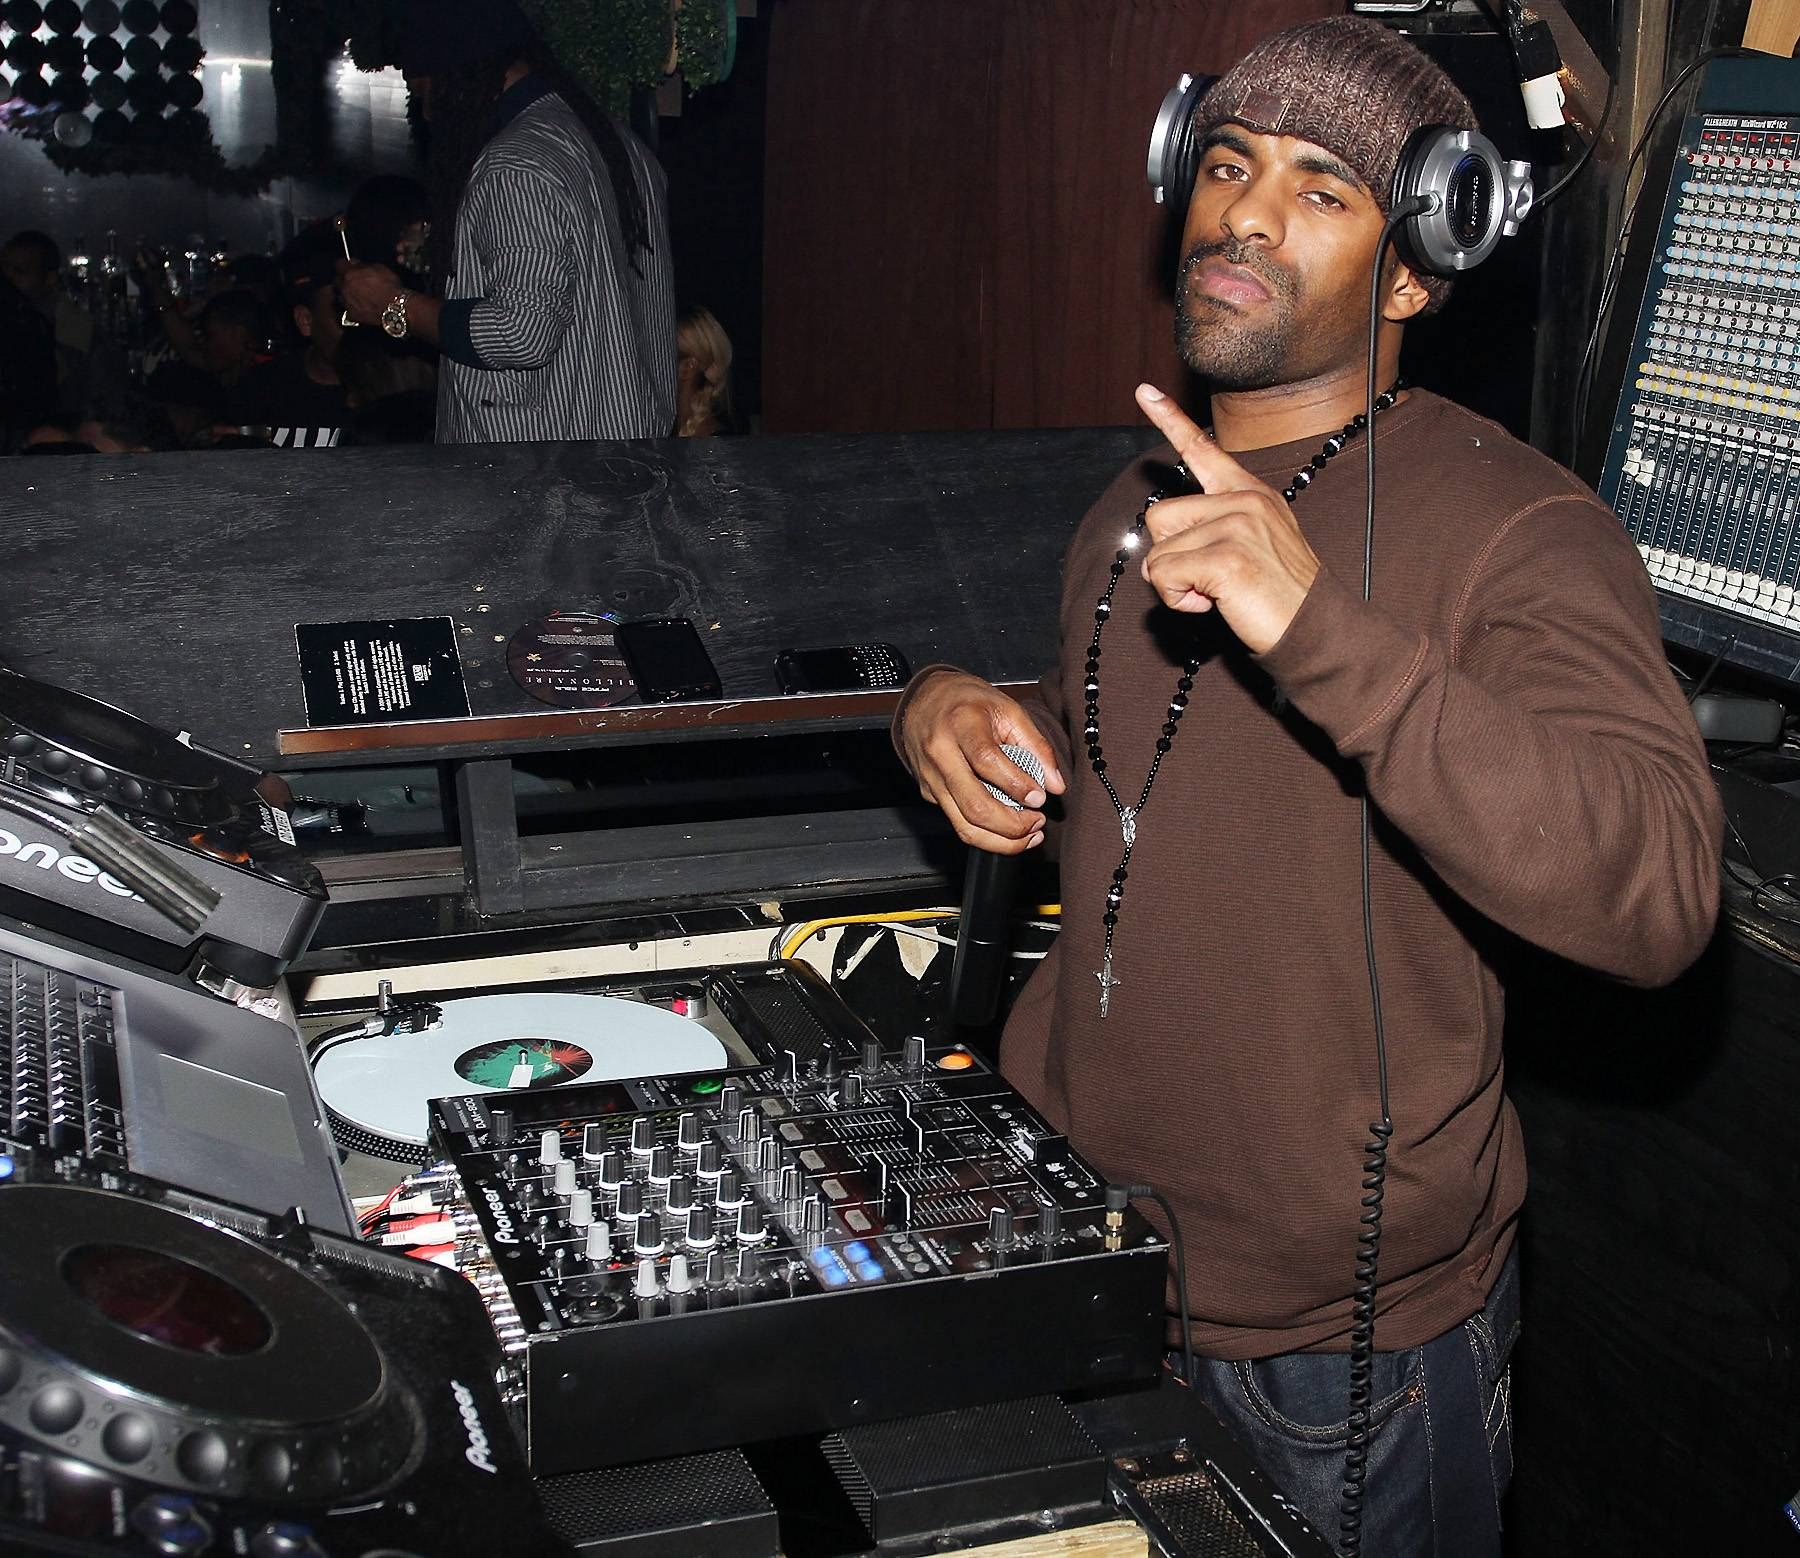 11. DJ Clue - DJ Clue changed the mixtape medium forever with his mid-'90s releases, which emphasized breaking new, exclusive music instead of showcasing mixing and scratching skills, as the first wave of tapes did. He was one of the first mixtape DJs to graduate to major-label albums; his 1998 debut, The Professional, went platinum. Later, his label, Desert Storm Entertainment, broke the careers of Joe Budden and Fabolous. And through it all, he's been a mainstay on NYC's radio-waves and club circuit.  (Photo: Jerritt Clark/Getty Images)